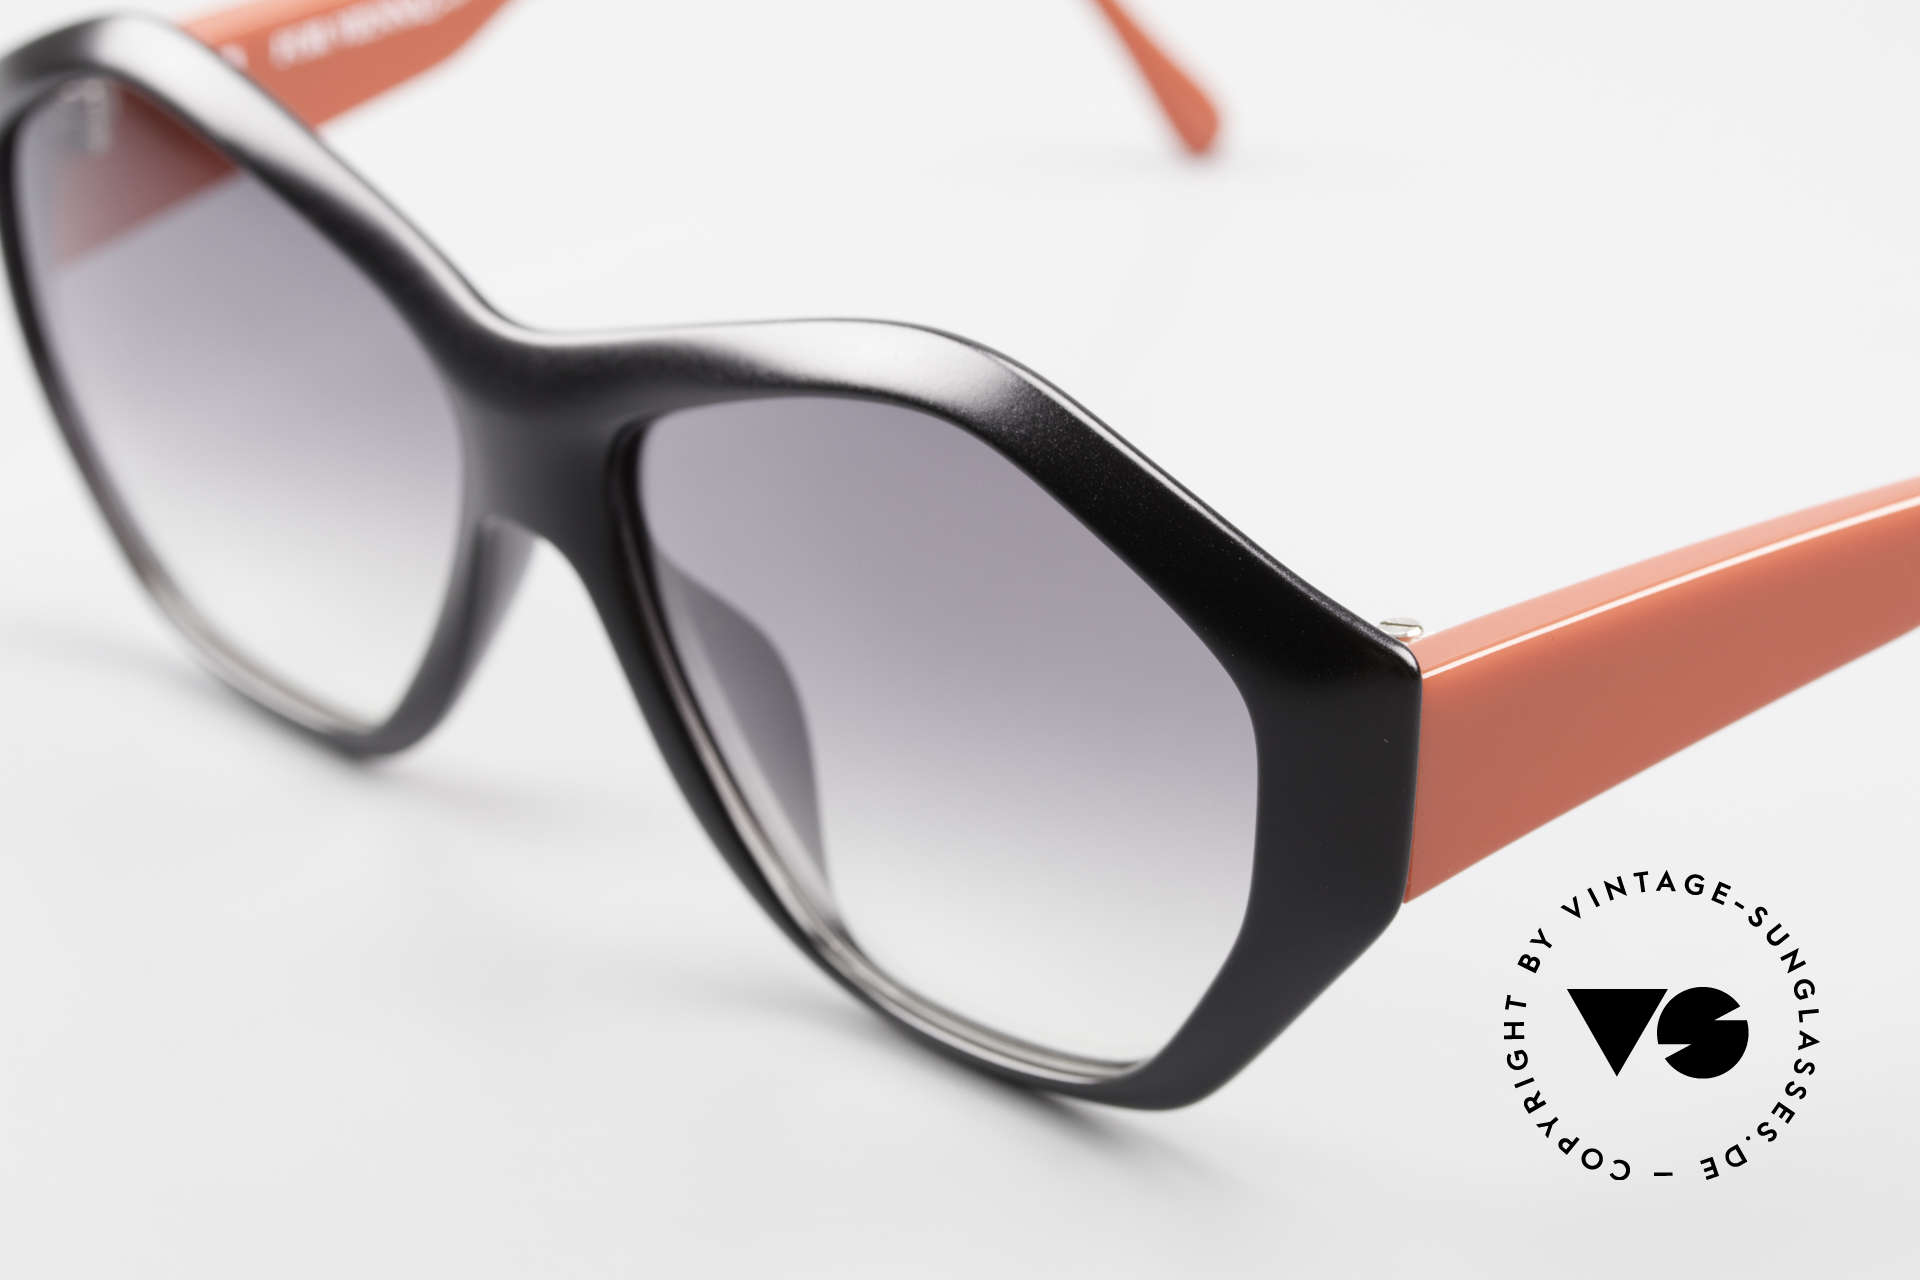 Paloma Picasso 1463 Ladies Sunglasses 90's Optyl, the incredible Optyl material does not seem to age, Made for Women